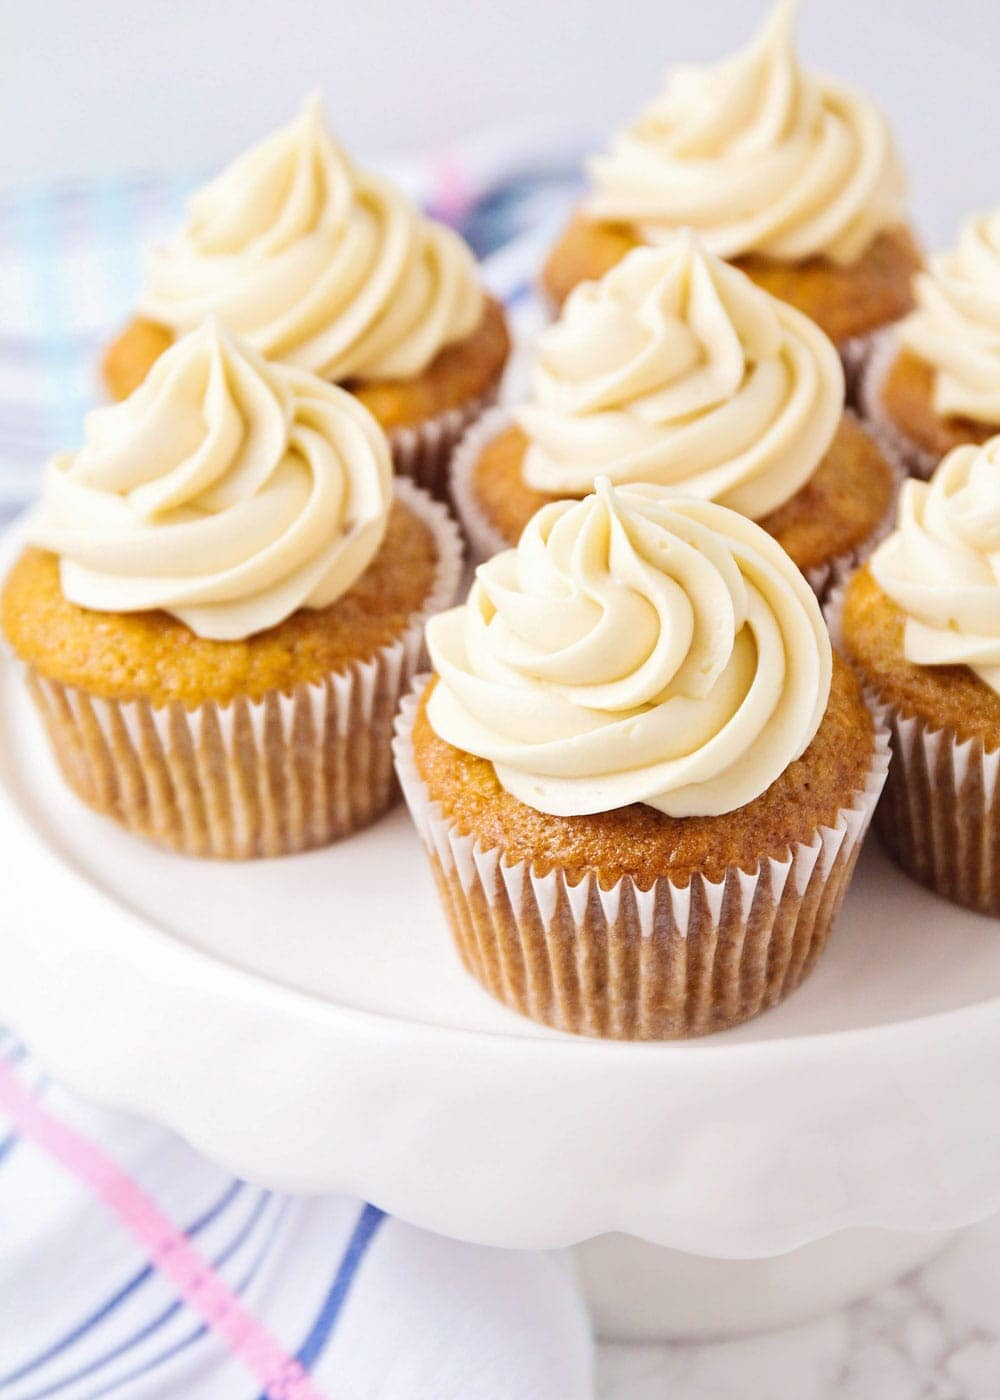 Carrot cake cupcakes recipe on white cake stand